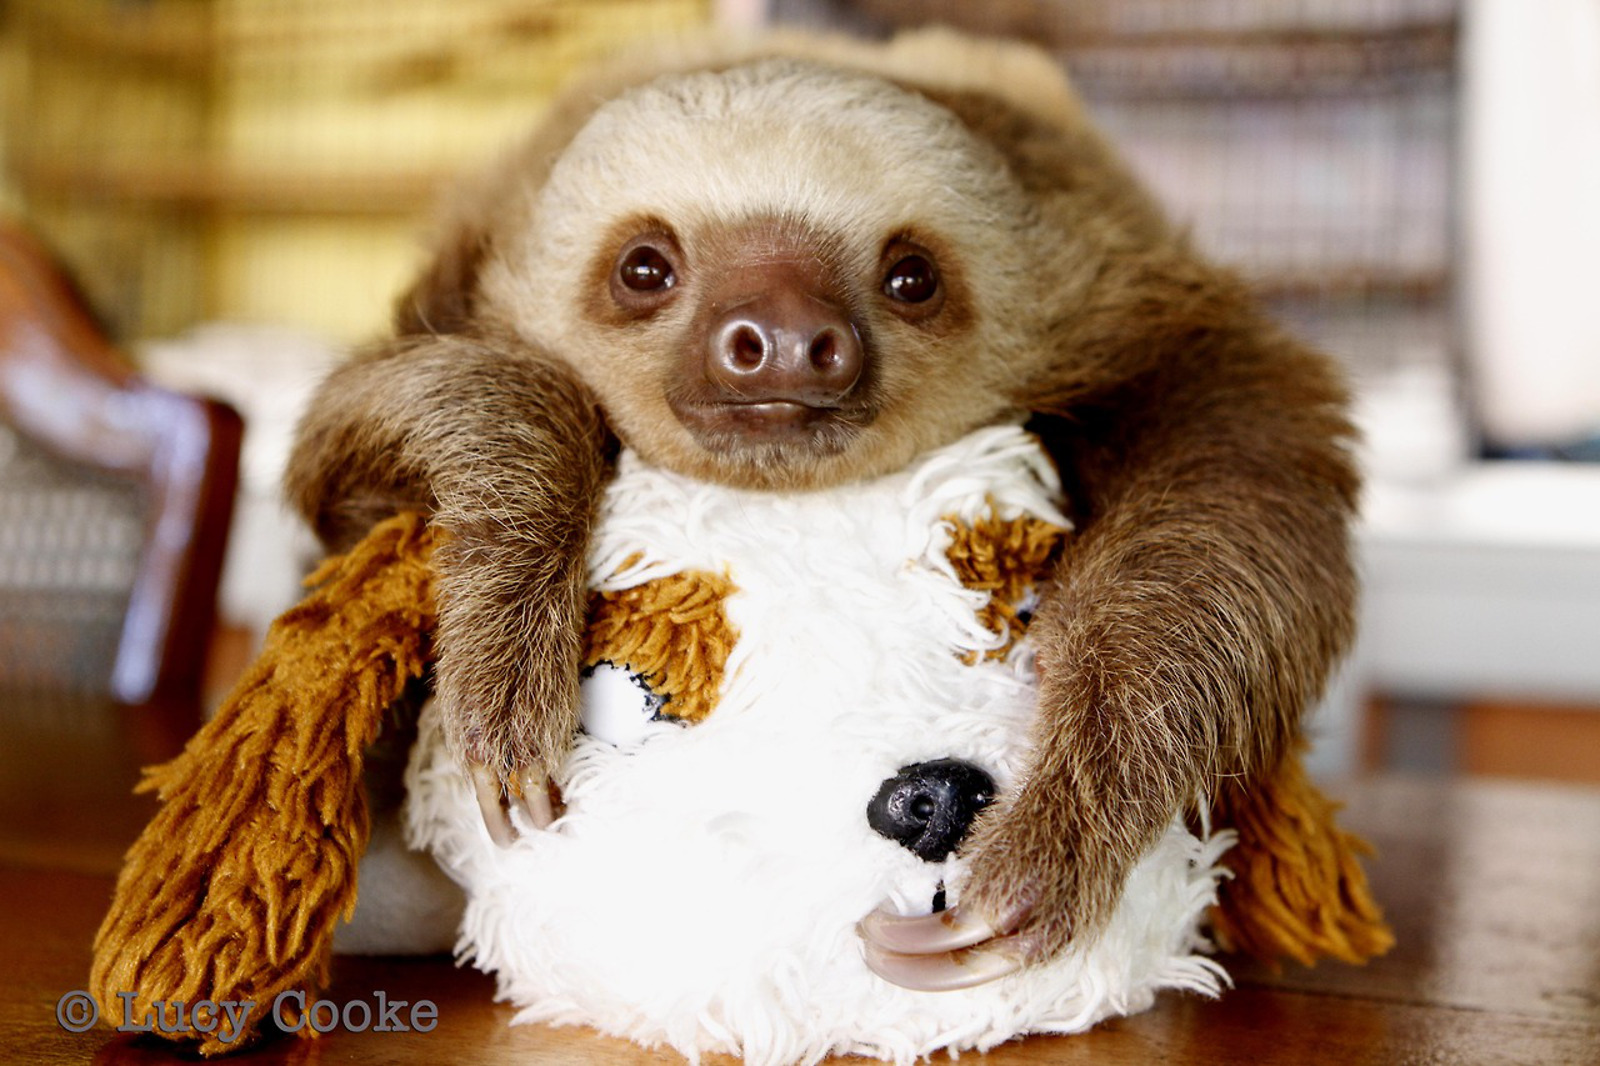 These Abandoned Baby Sloths are as Cute as They Come!